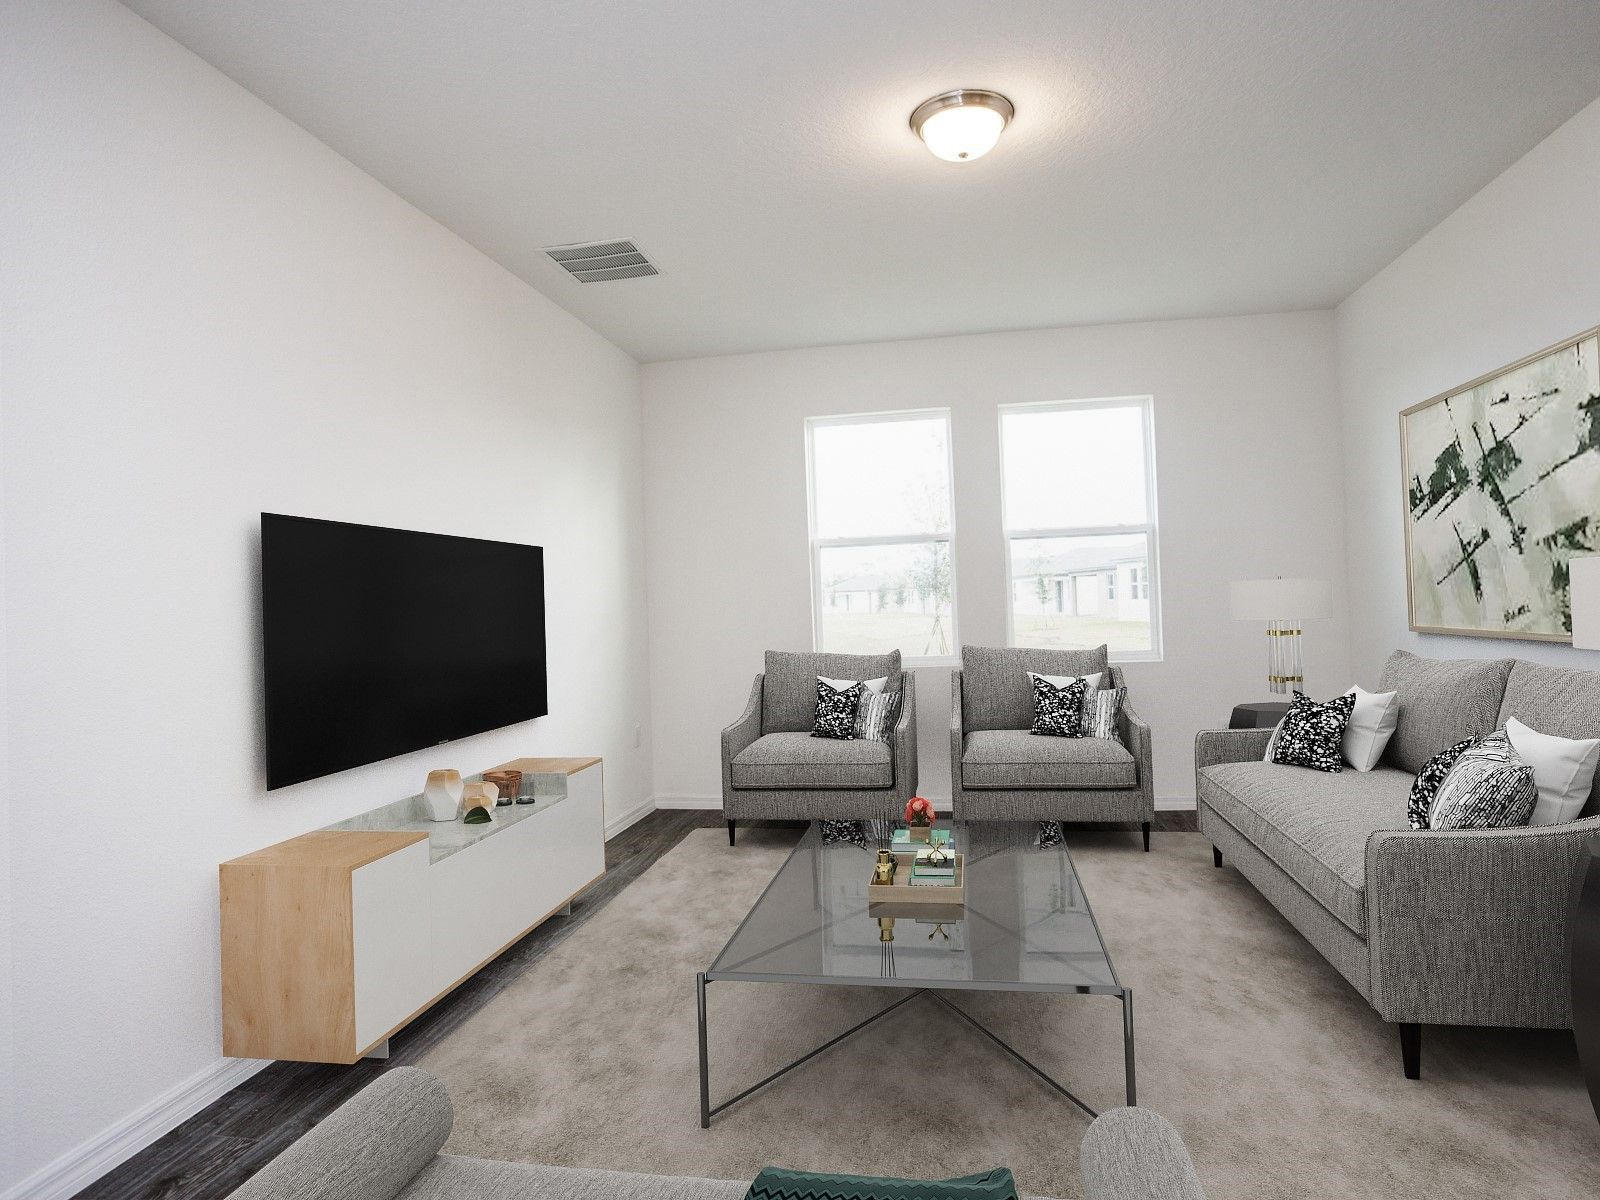 Living Area featured in the Valencia - Meritage Homes By Crown Community Development